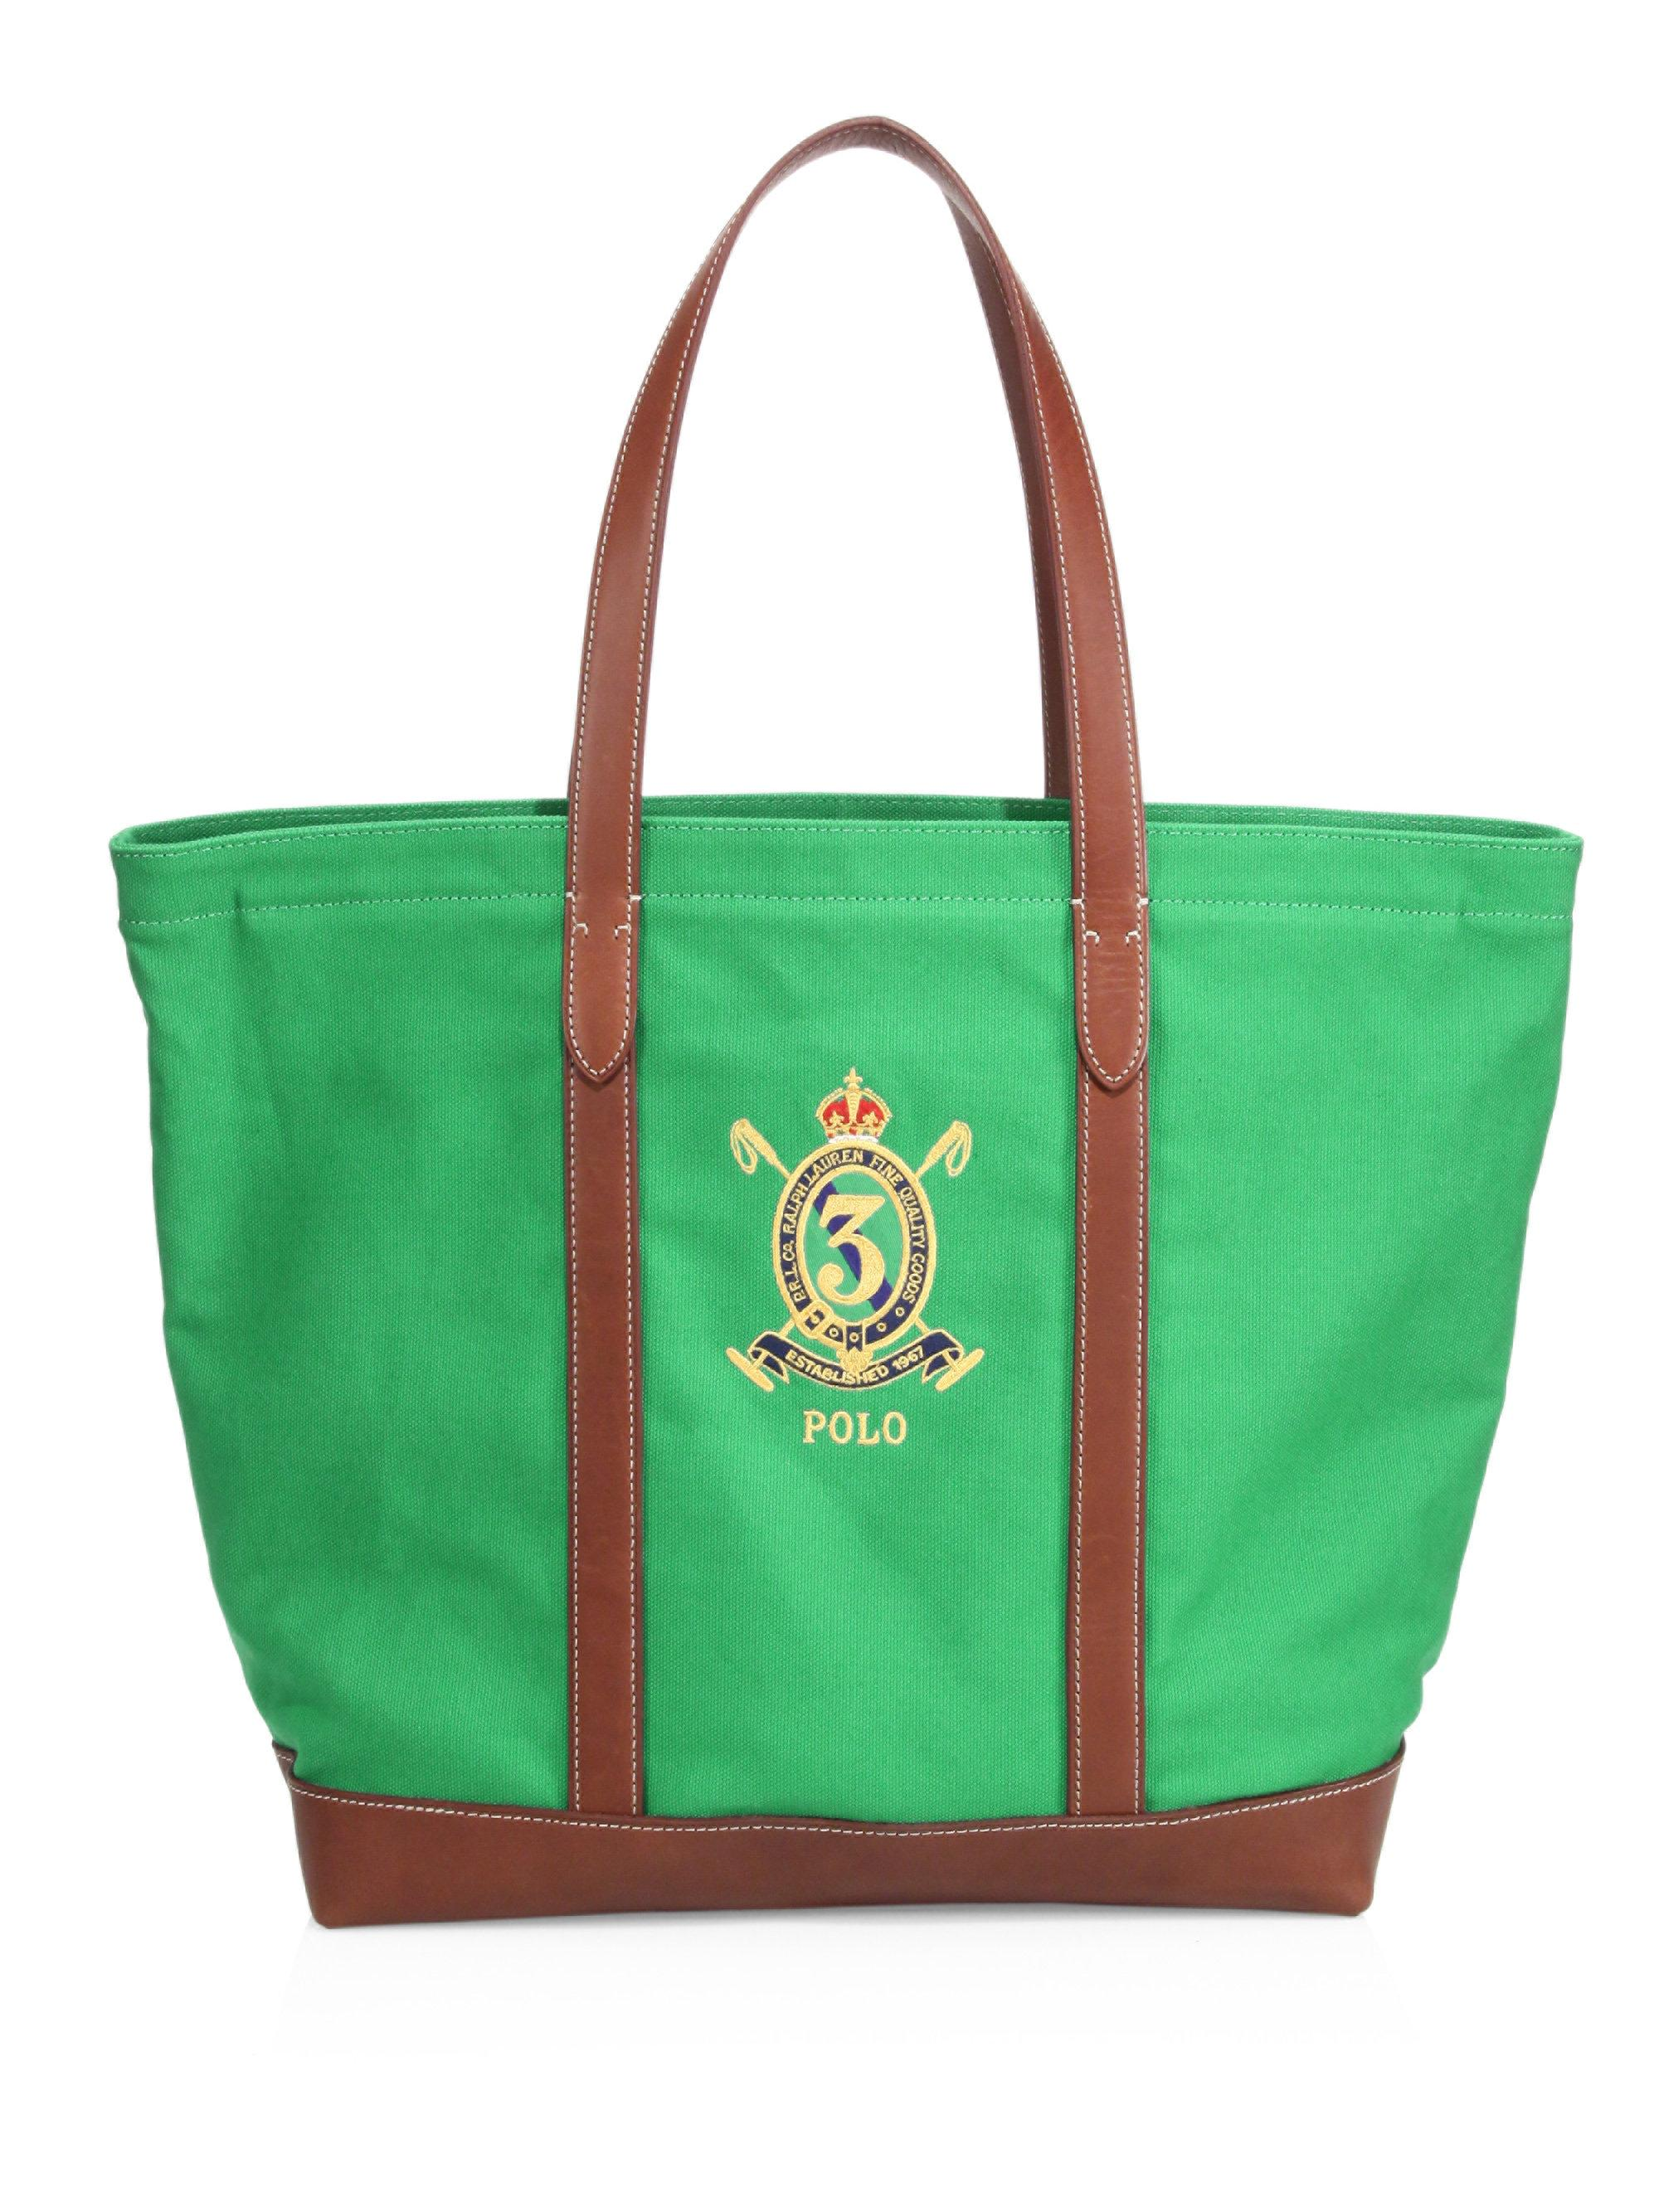 Lyst - Polo Ralph Lauren Crest Canvas Tote in Green for Men 94ee56a21a086